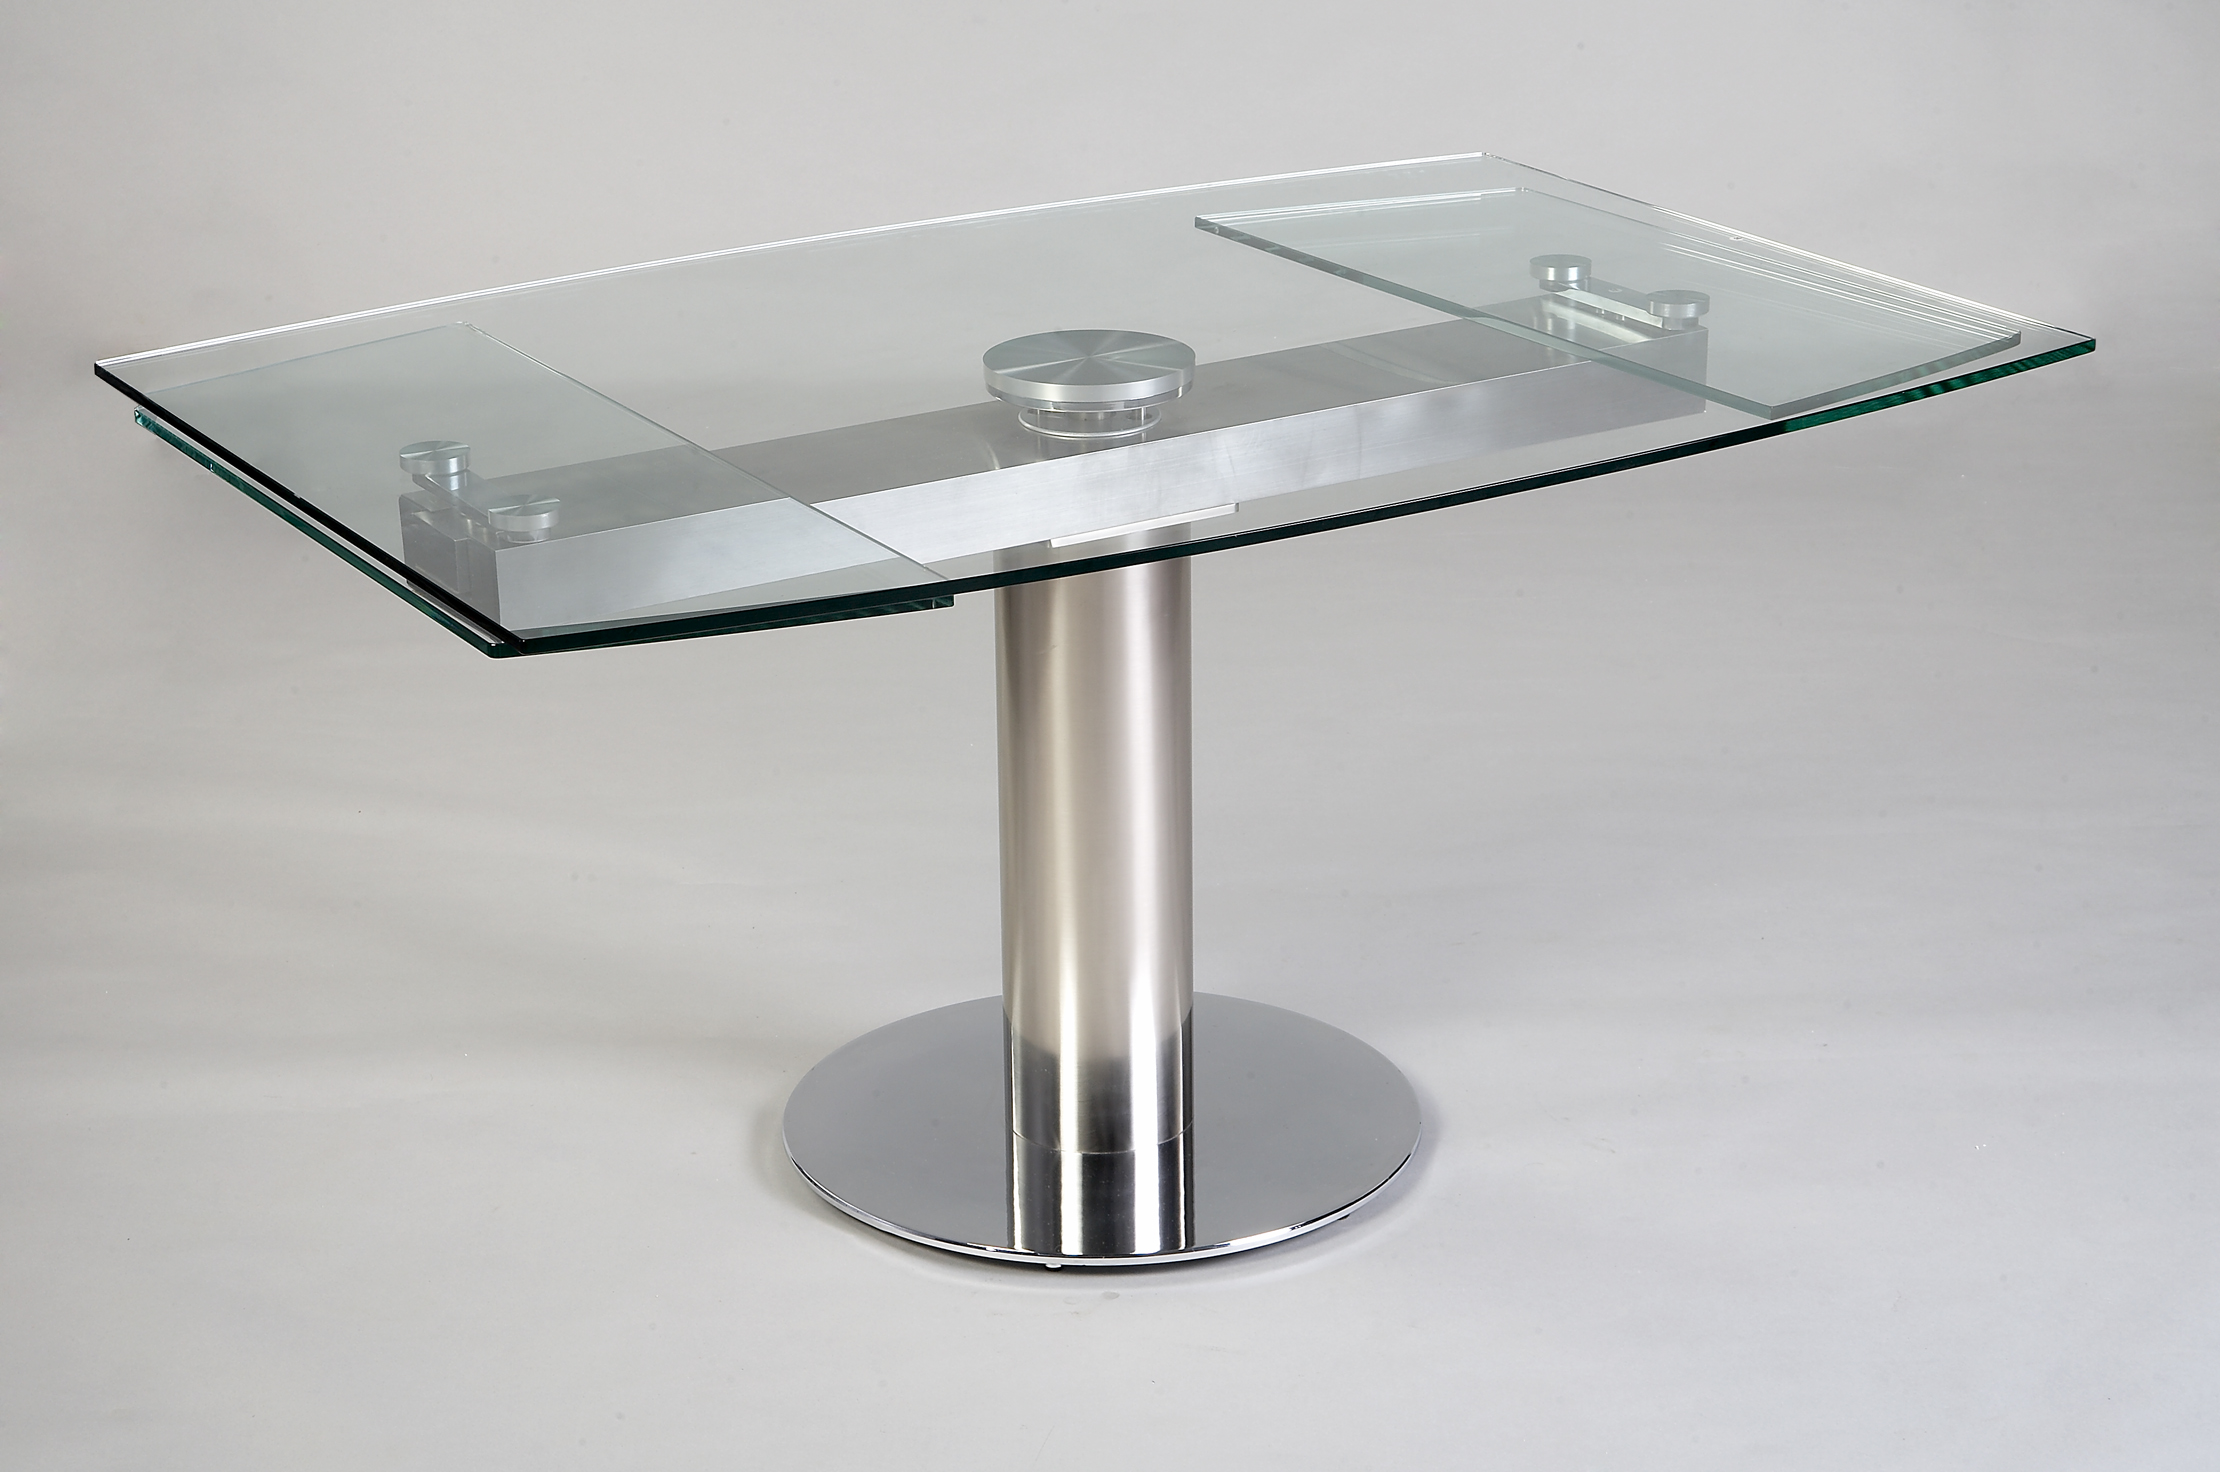 Table contemporaine en verre avec rallonge for Table ronde verre design